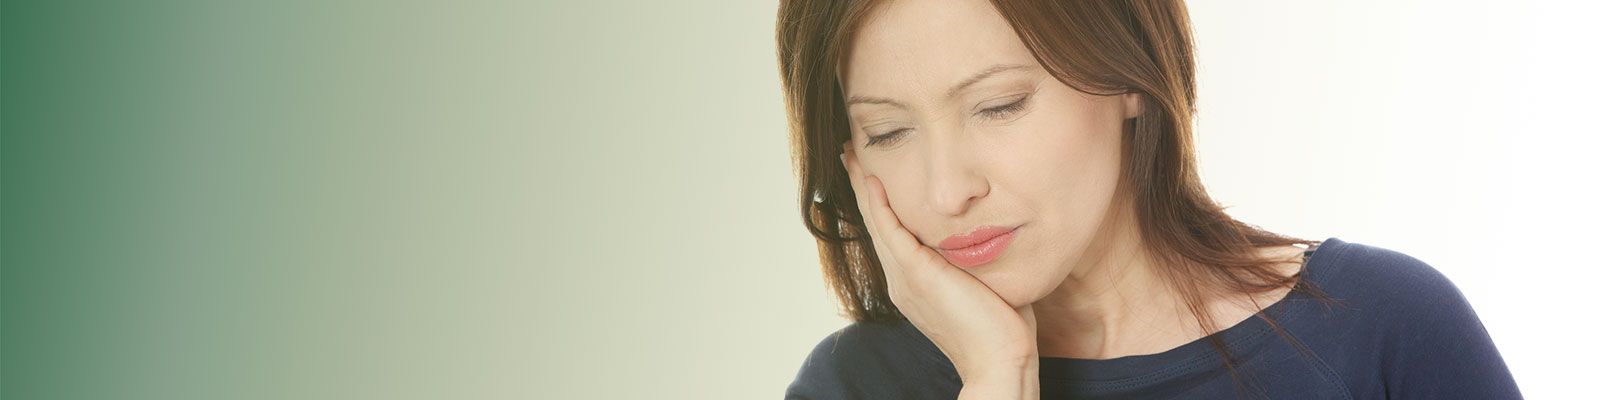 Woman having terrible toothache